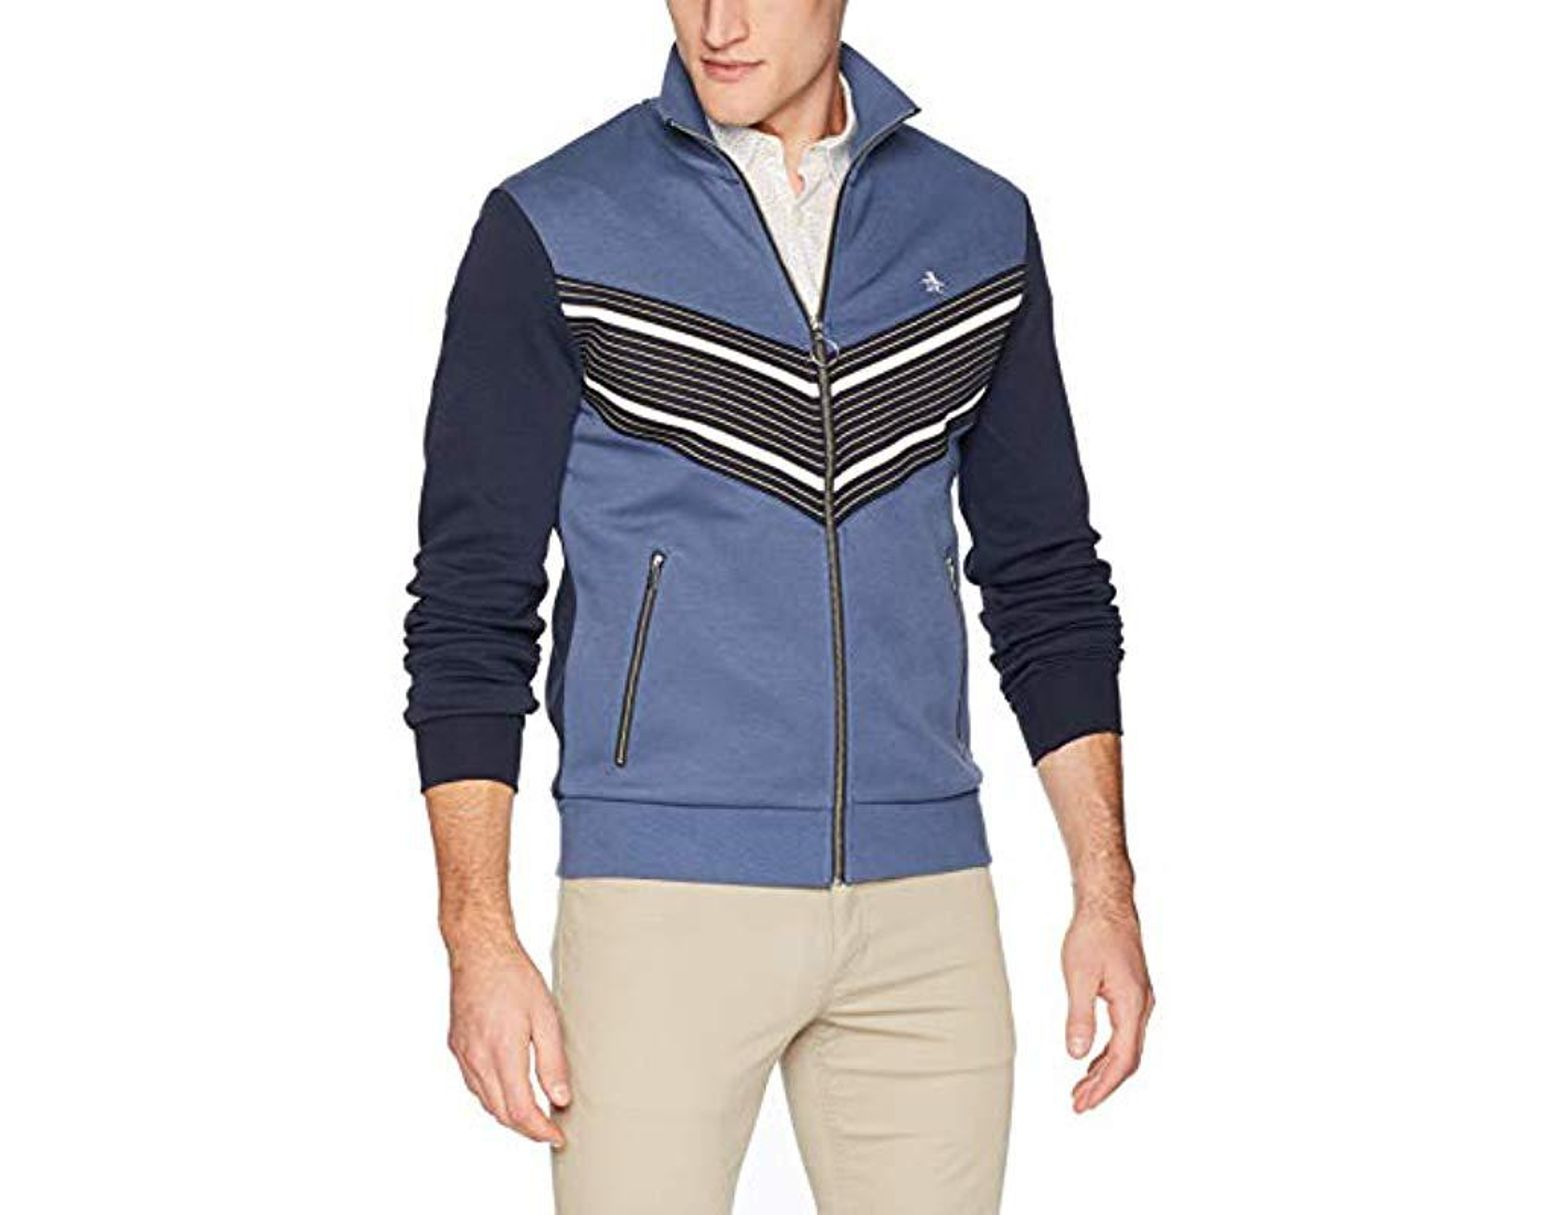 2a09201c0 Men's Blue Big And Tall Long Sleeve Track Jacket